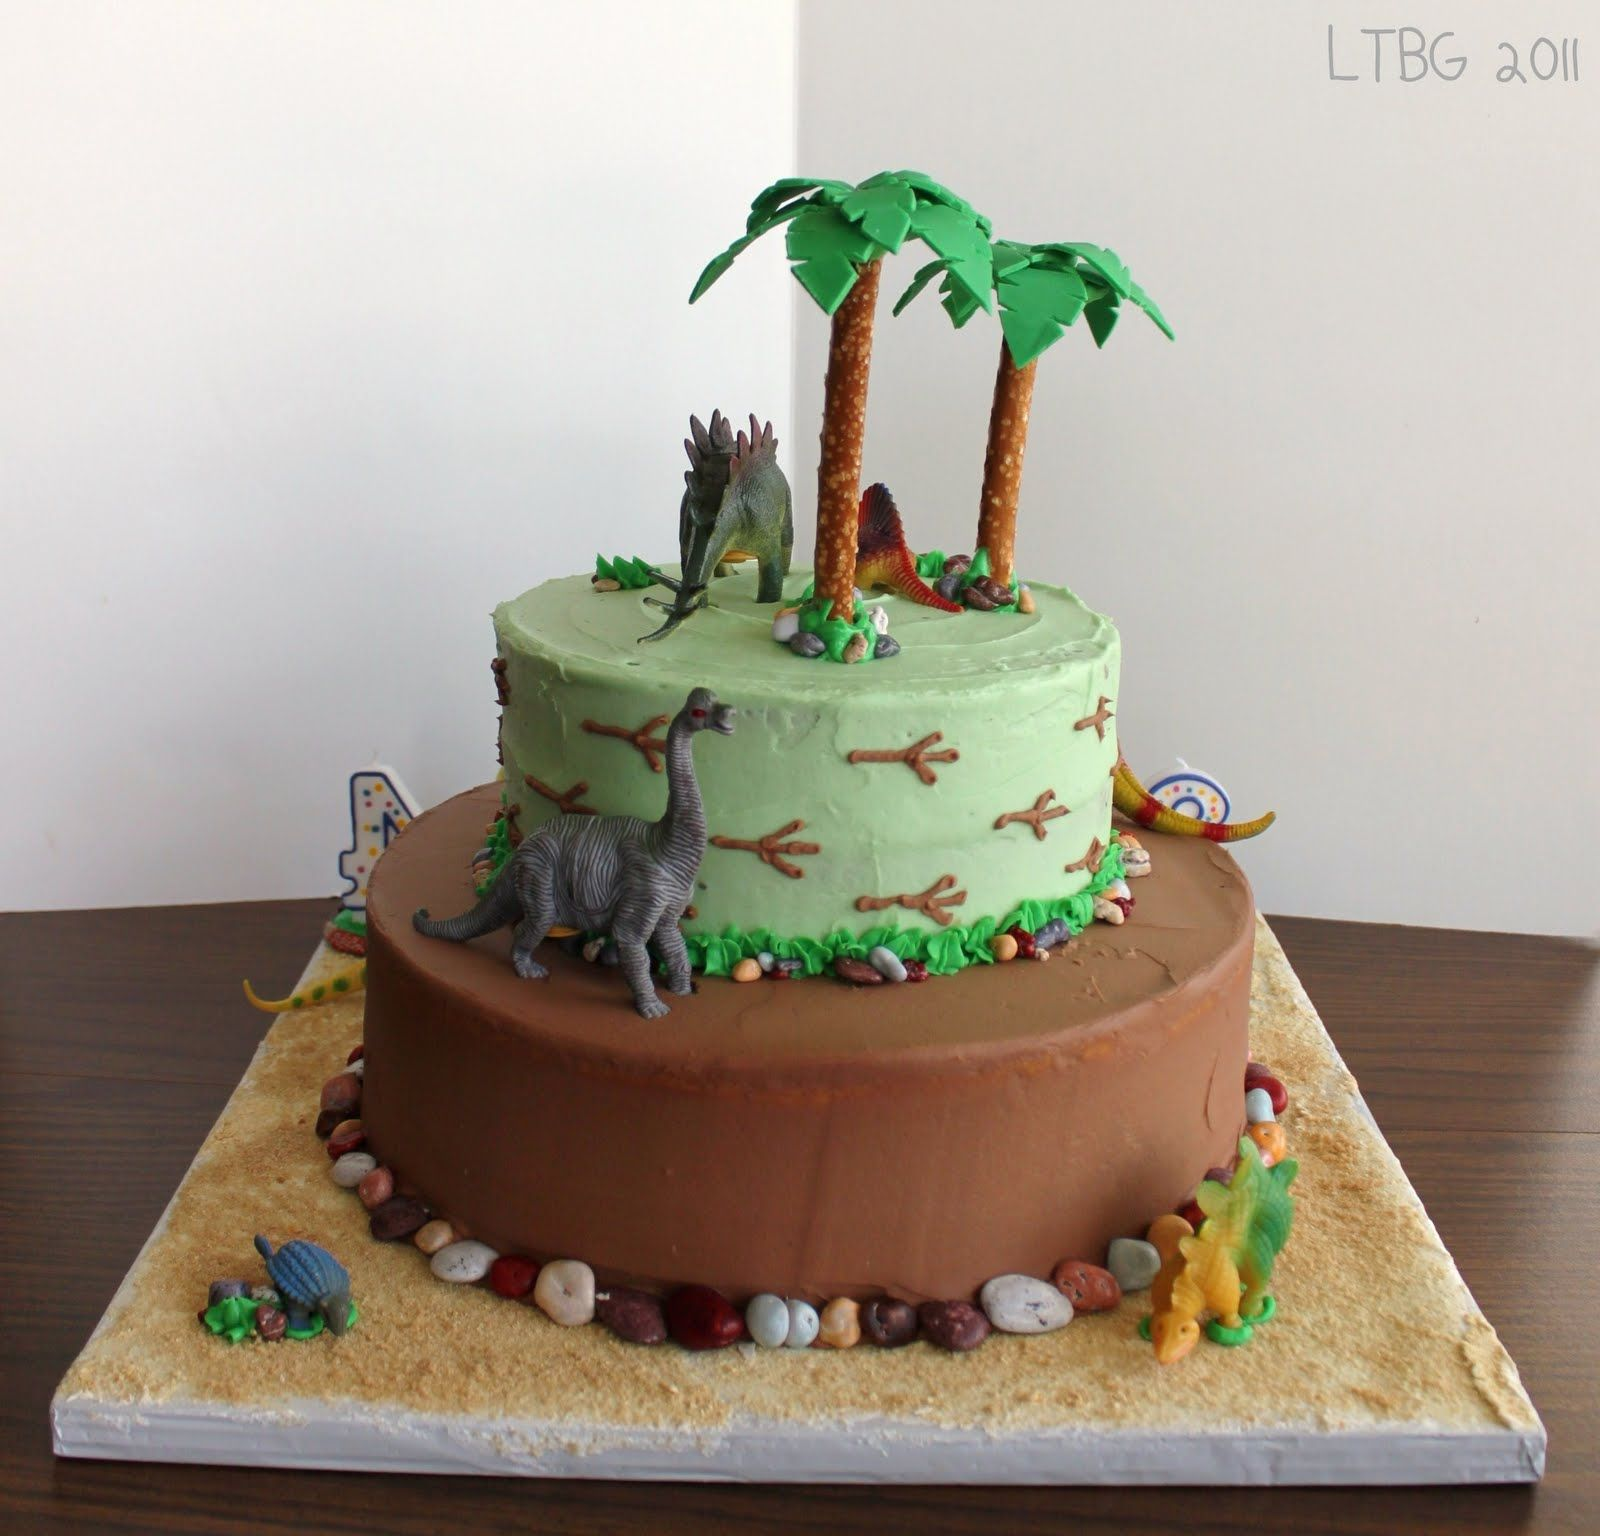 Dinosaur Cake (using Toy Dinosaurs)